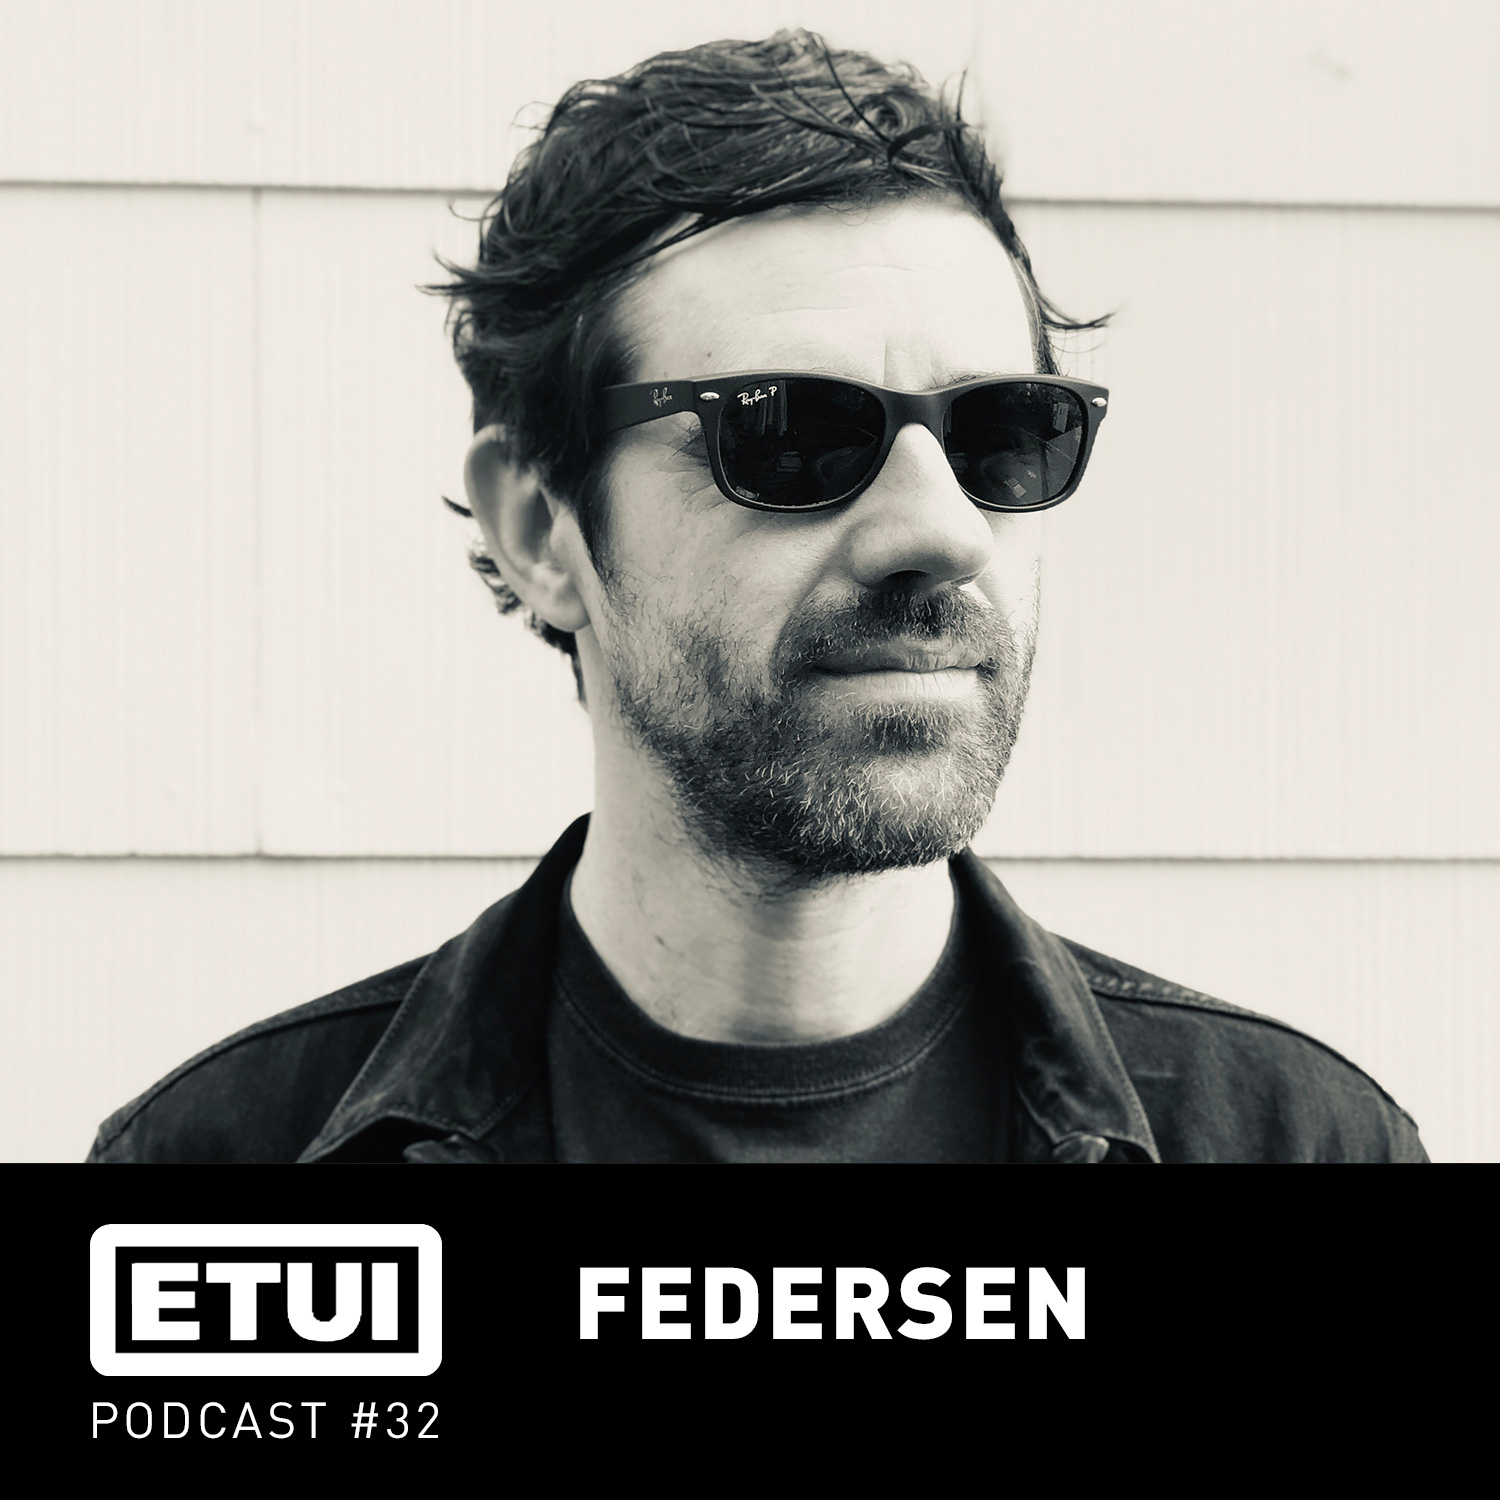 Etui Podcast #32: Federsen